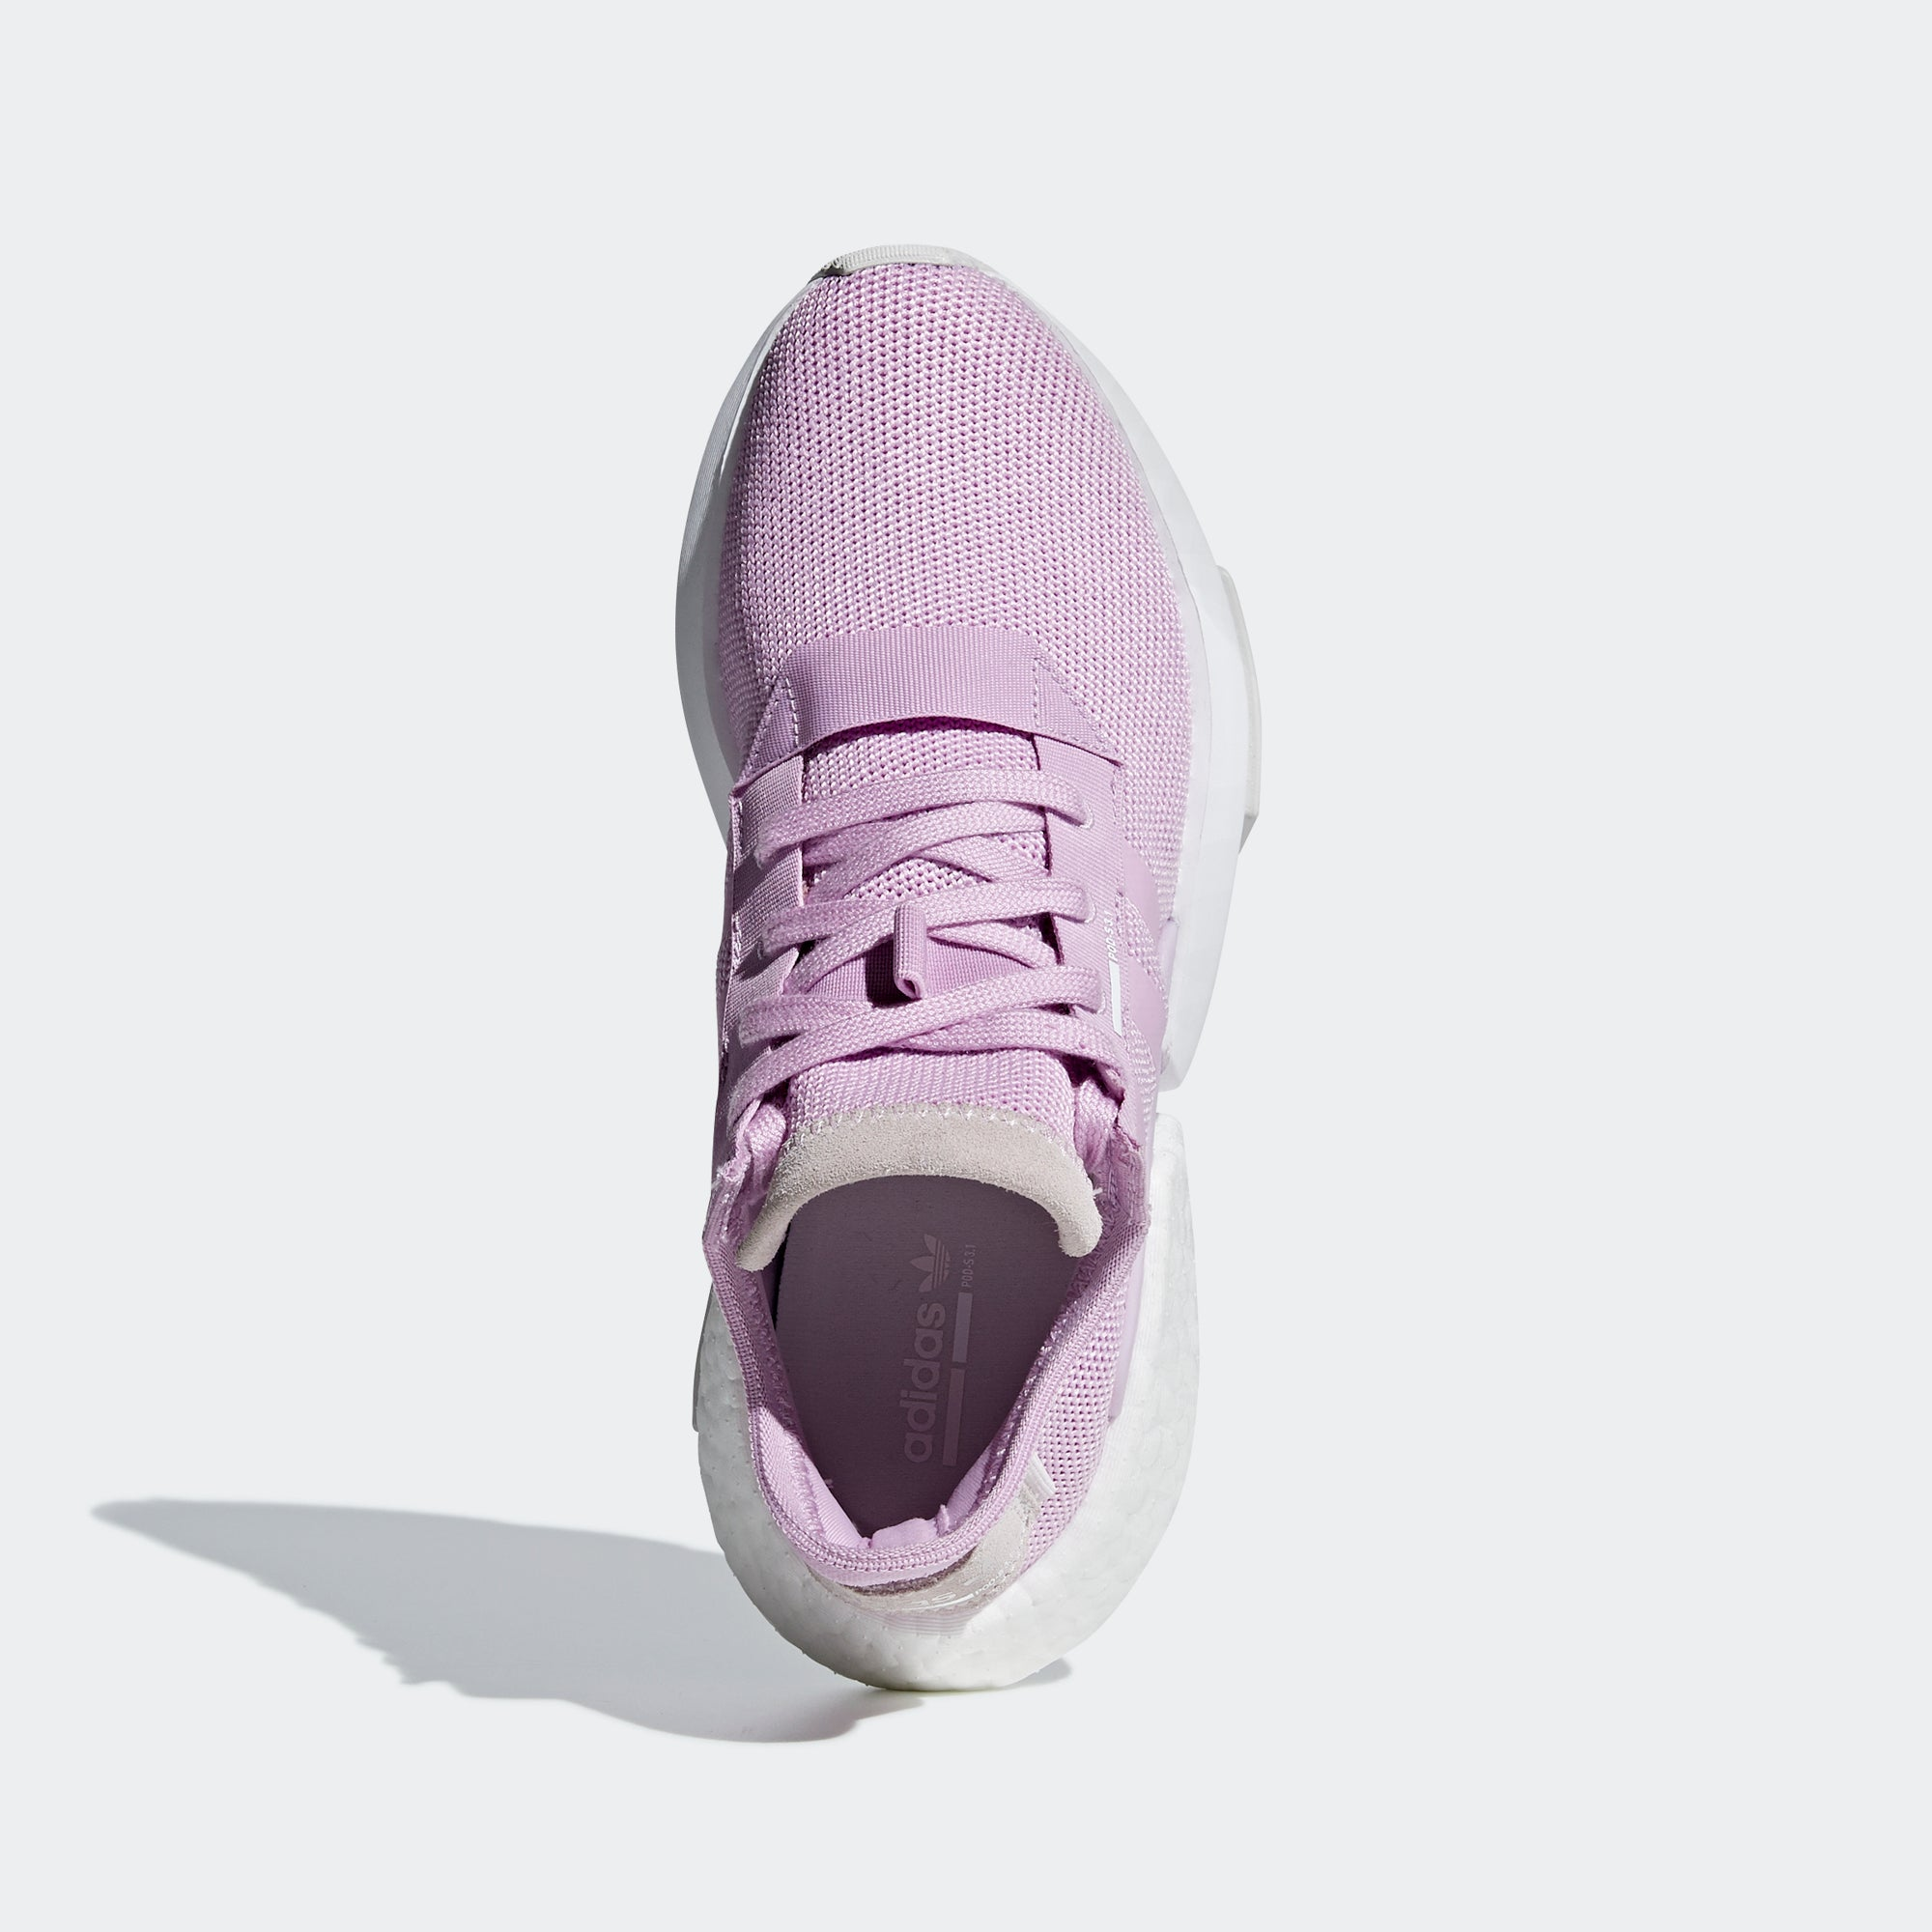 NEW ADIDAS ORIGINALS POD-S3.1 WOMENS SHOES SNEAKERS LILAC ORCHID TINT 5 to 10.5